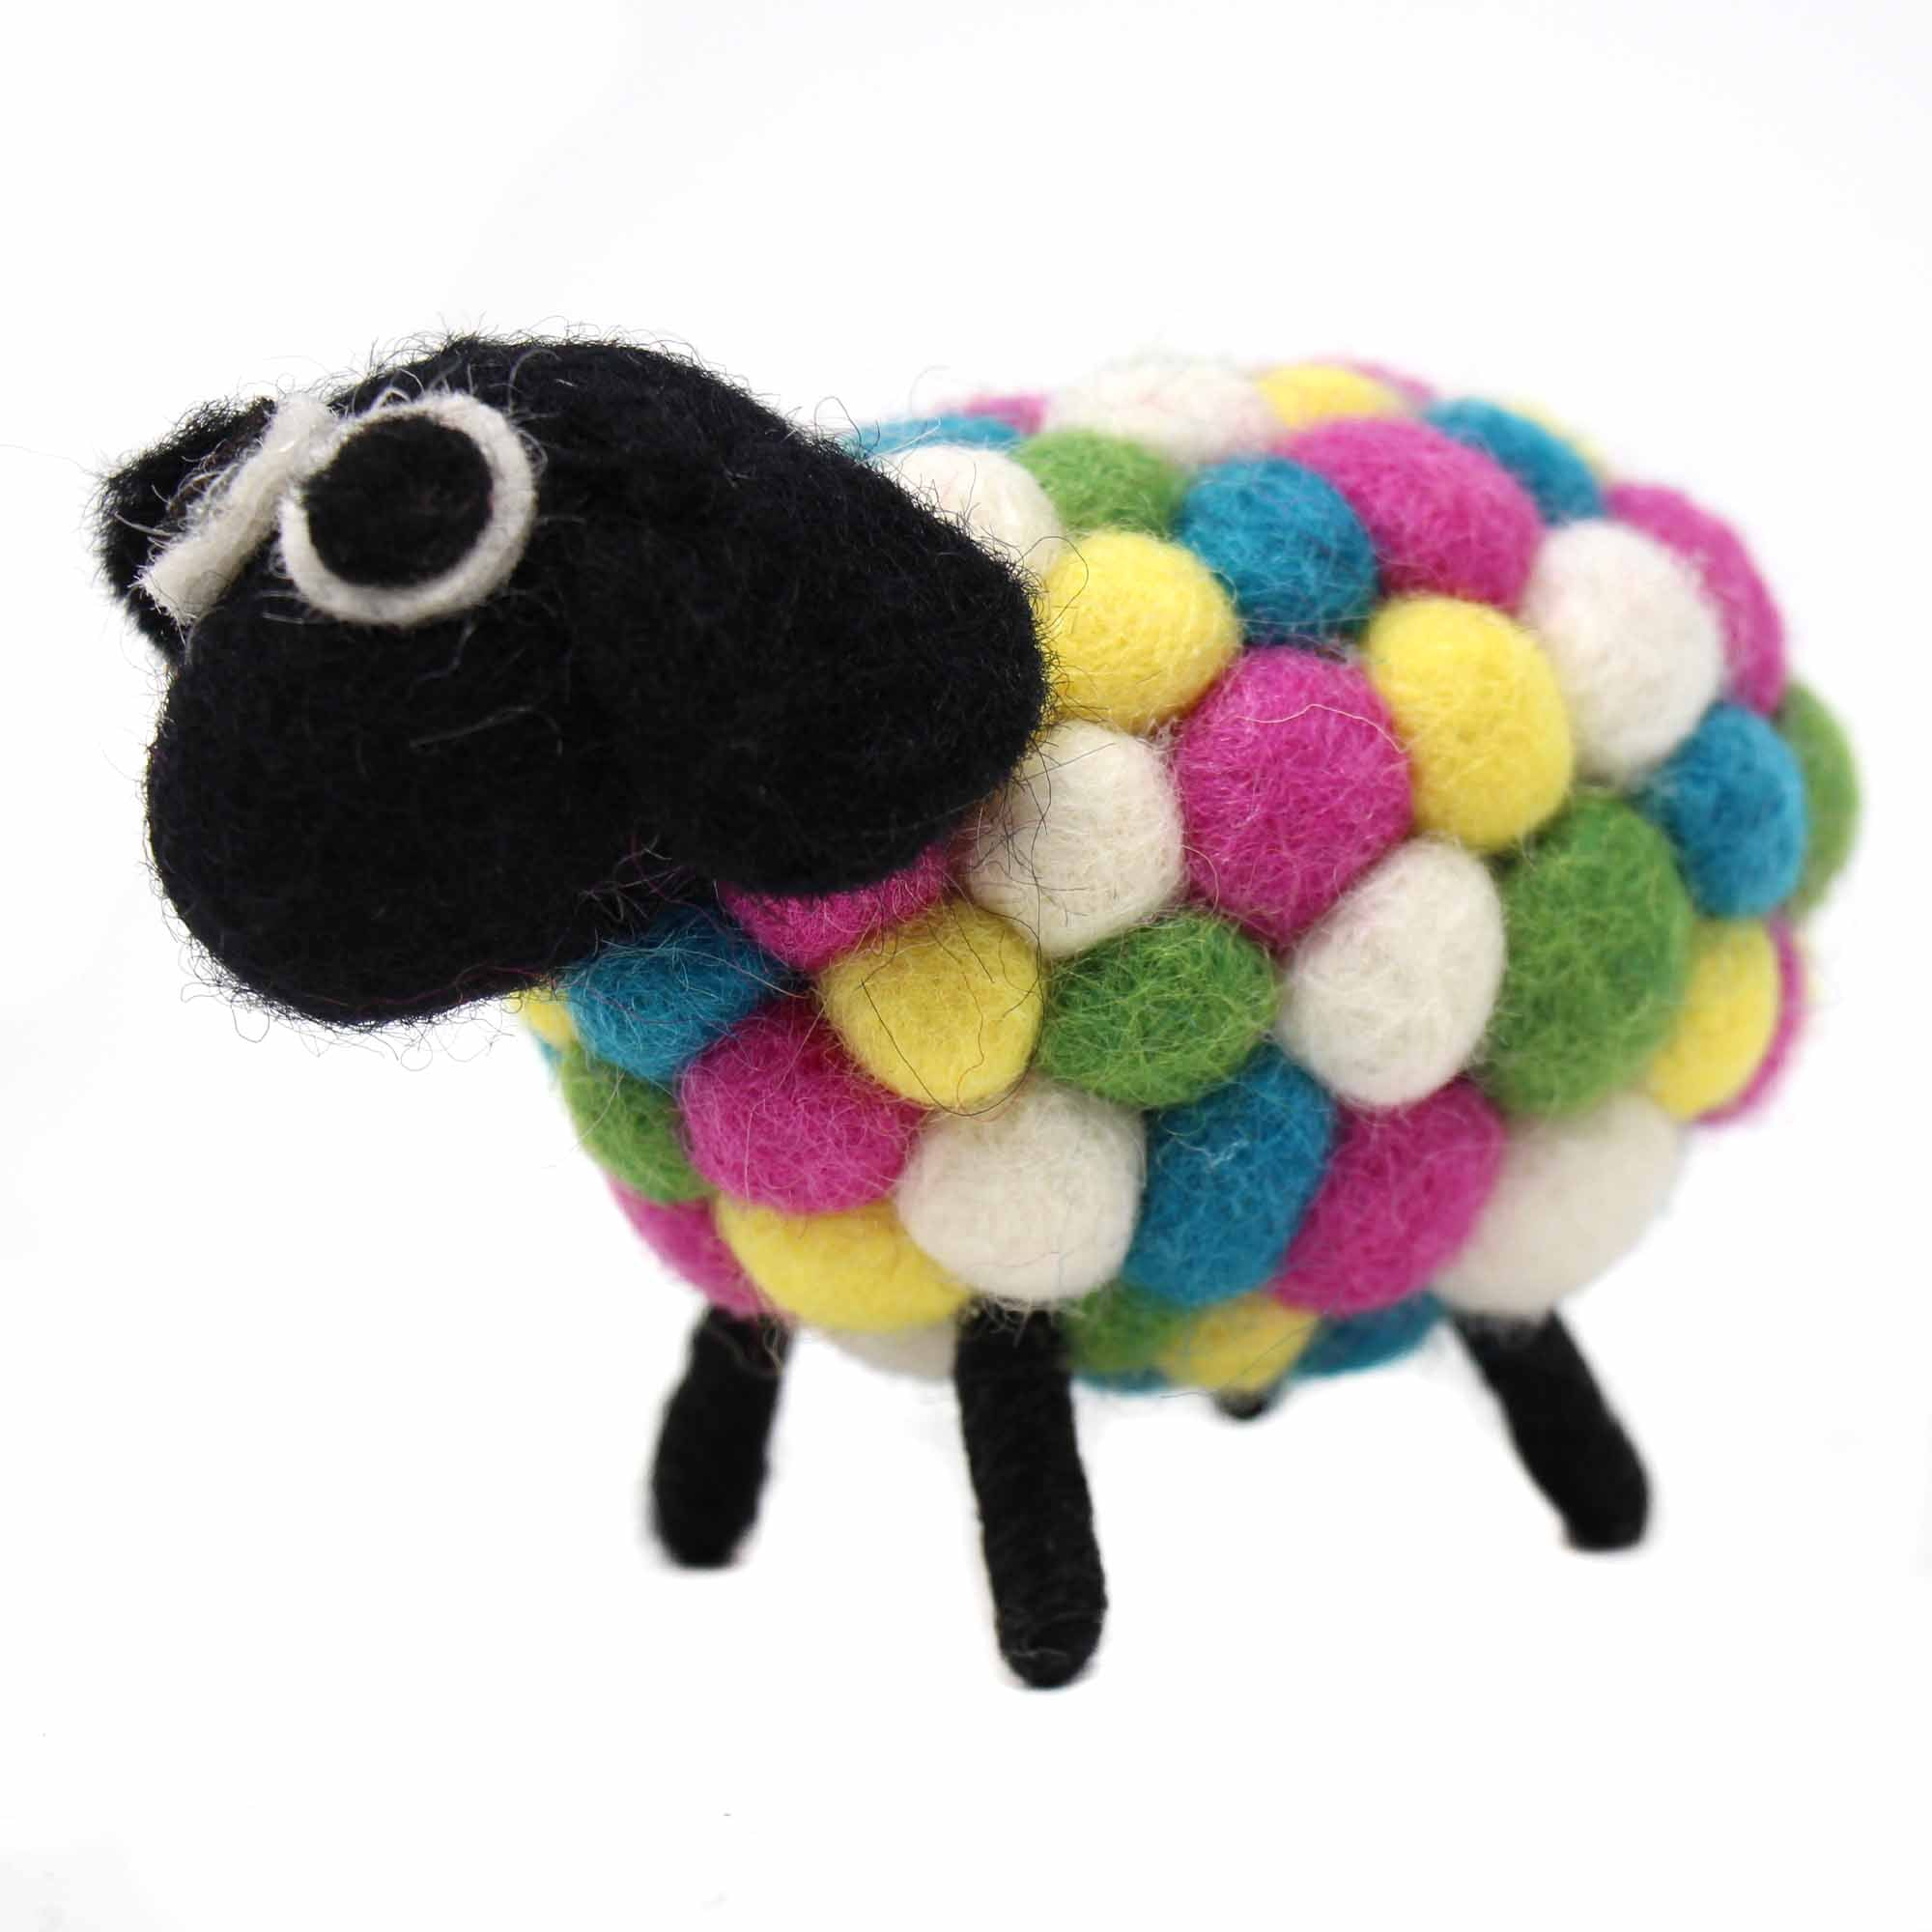 Handcrafted Felt Bright Sheep Décor, Small